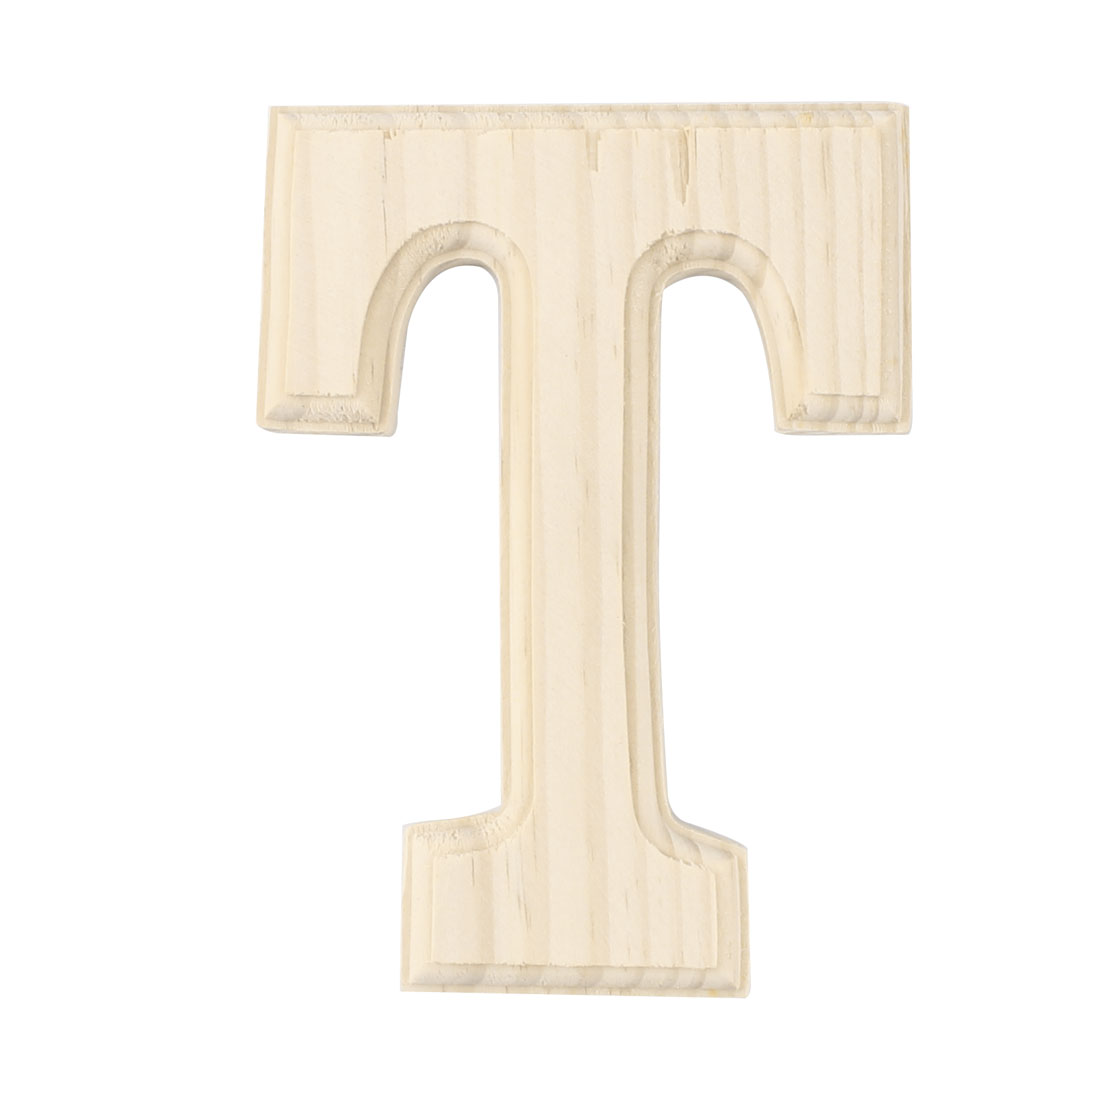 Home Bedroom Wooden Decoration English T Letter Alphabet Word Free DIY Wall Wood Color